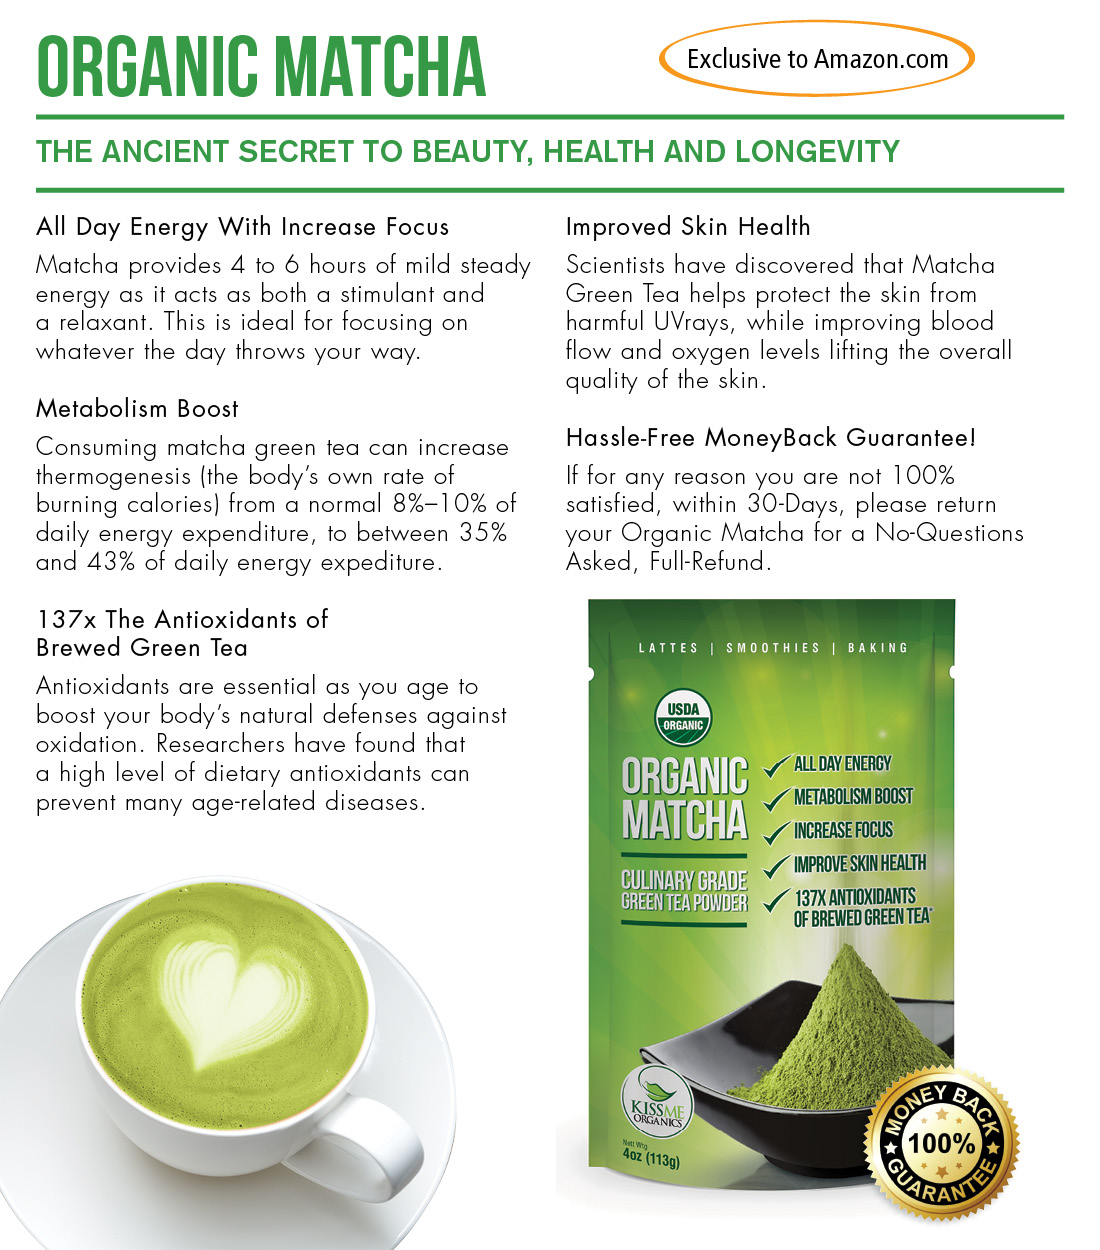 the health benefits of consuming organic green tea Try to choose a higher quality brand of green tea, because some of the lower quality brands can contain excessive amounts of fluoride  that being said, even if you choose a lower quality brand, the benefits still far outweigh any risk summary green tea is loaded with polyphenol antioxidants, including a catechin called egcg these antioxidants can have various beneficial effects on health.